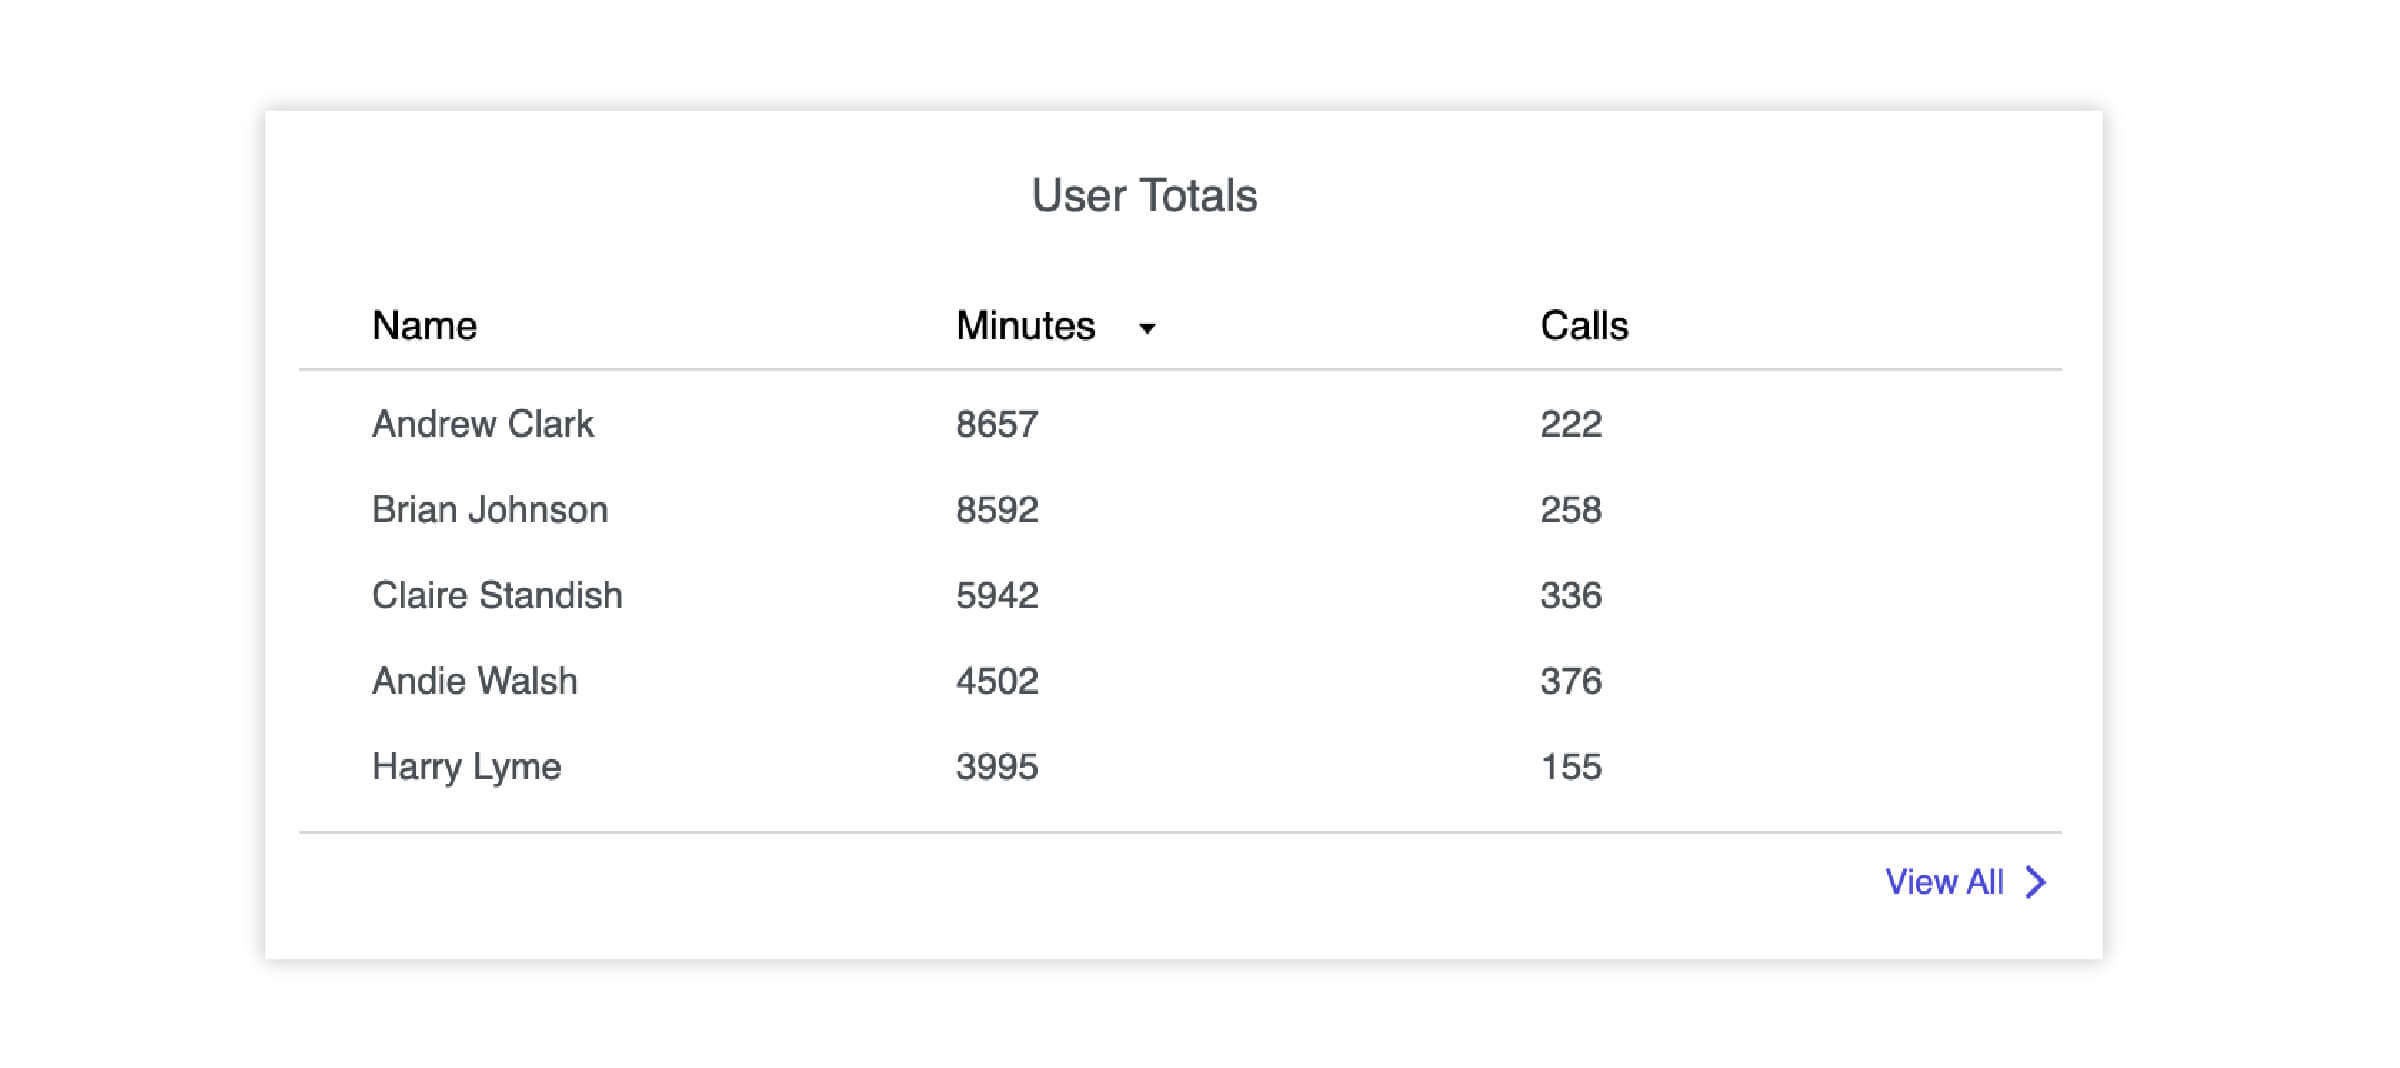 Lifesize Admin Console highlighting the top users of an account.